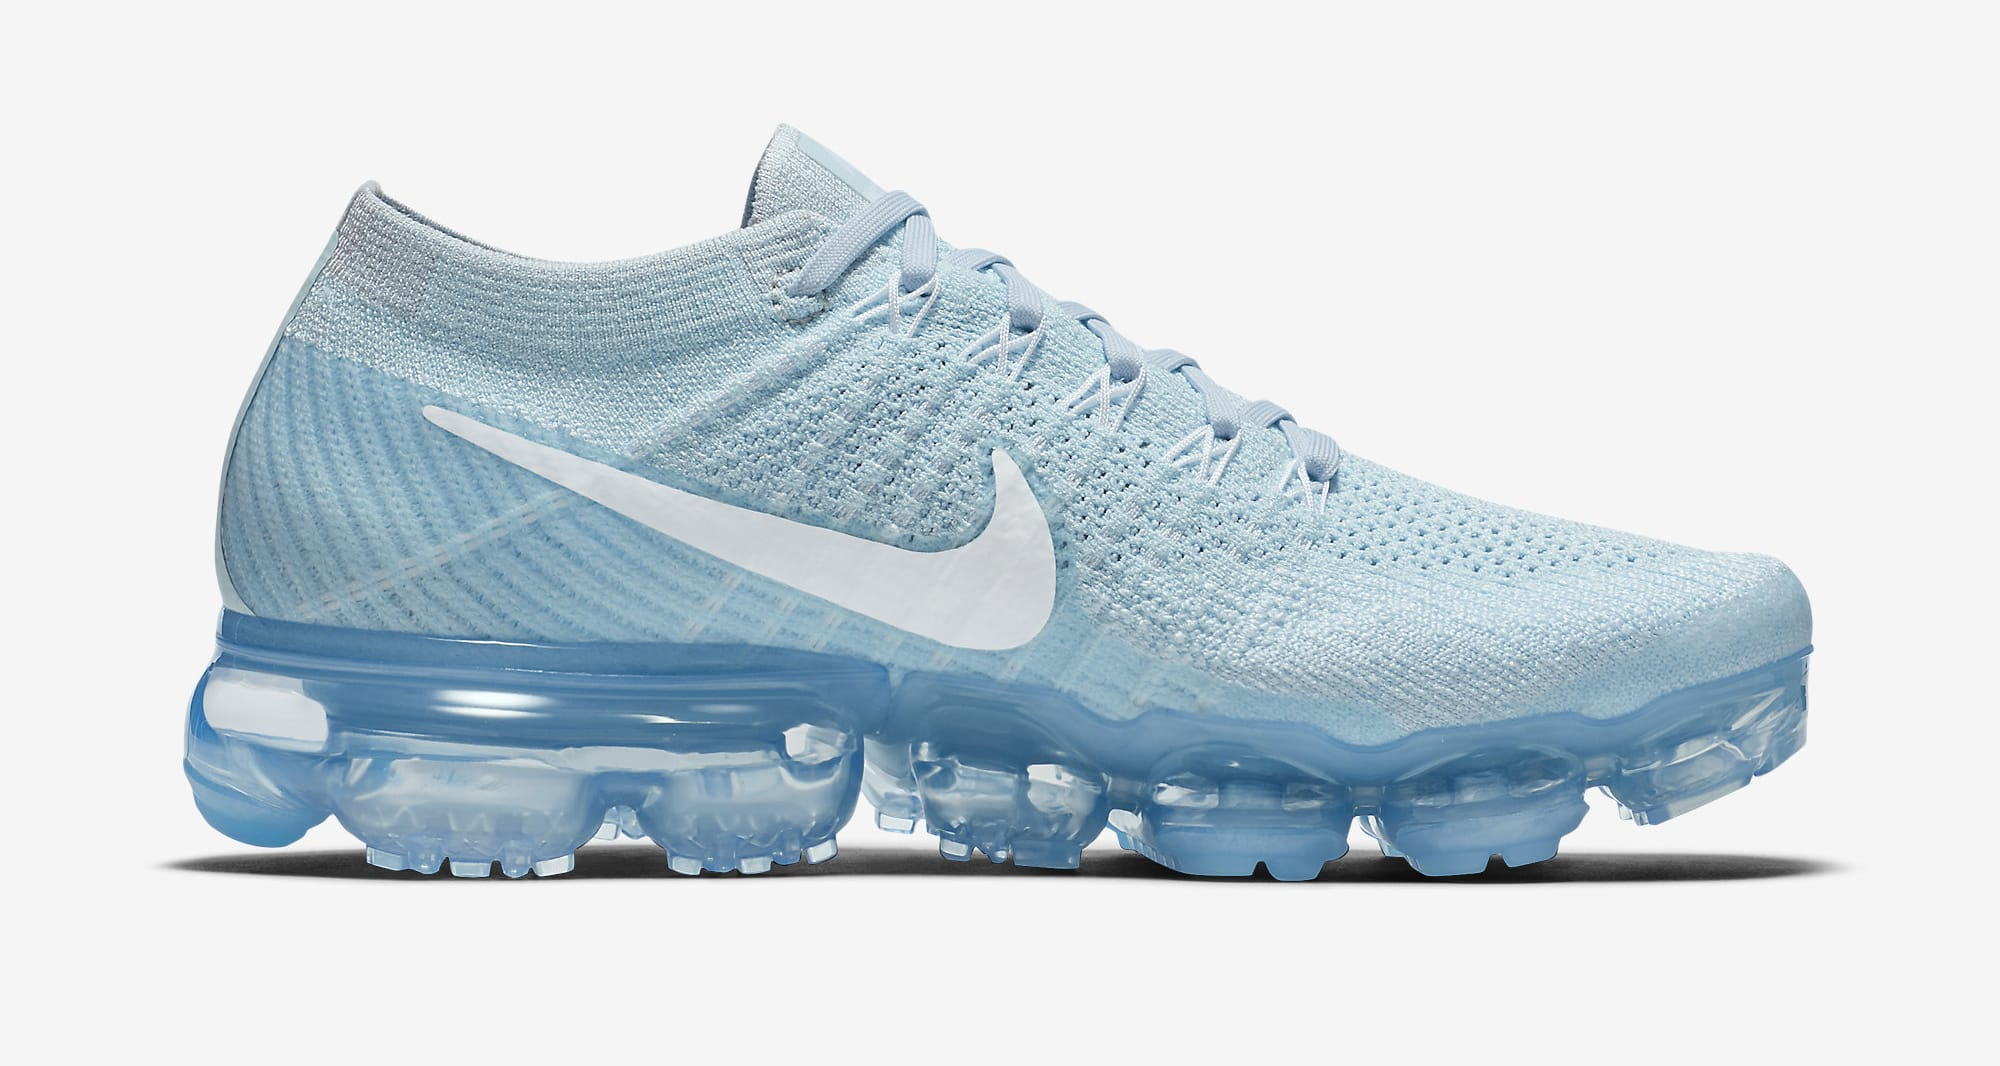 e1d4d1ab49 Buy Nike Cheap Air Vapormax Flyknit Running Shoes Sale Online 2018